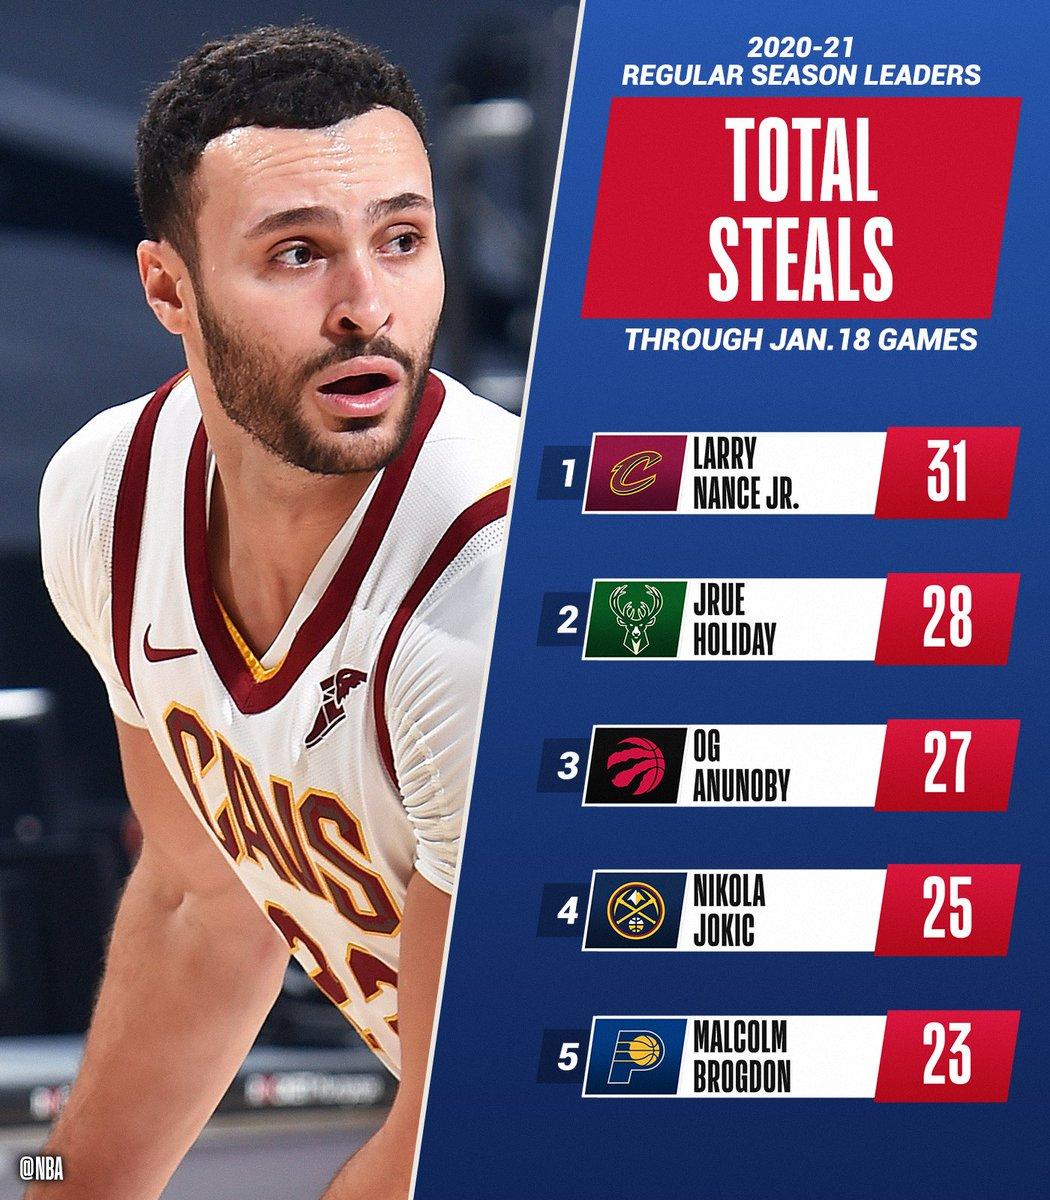 The TOTAL STEALS and STEALS PER GAME leaders of the @NBA season through 1/18.   📊: https://t.co/Z32NUvmrF9 https://t.co/iq4o0arYsT